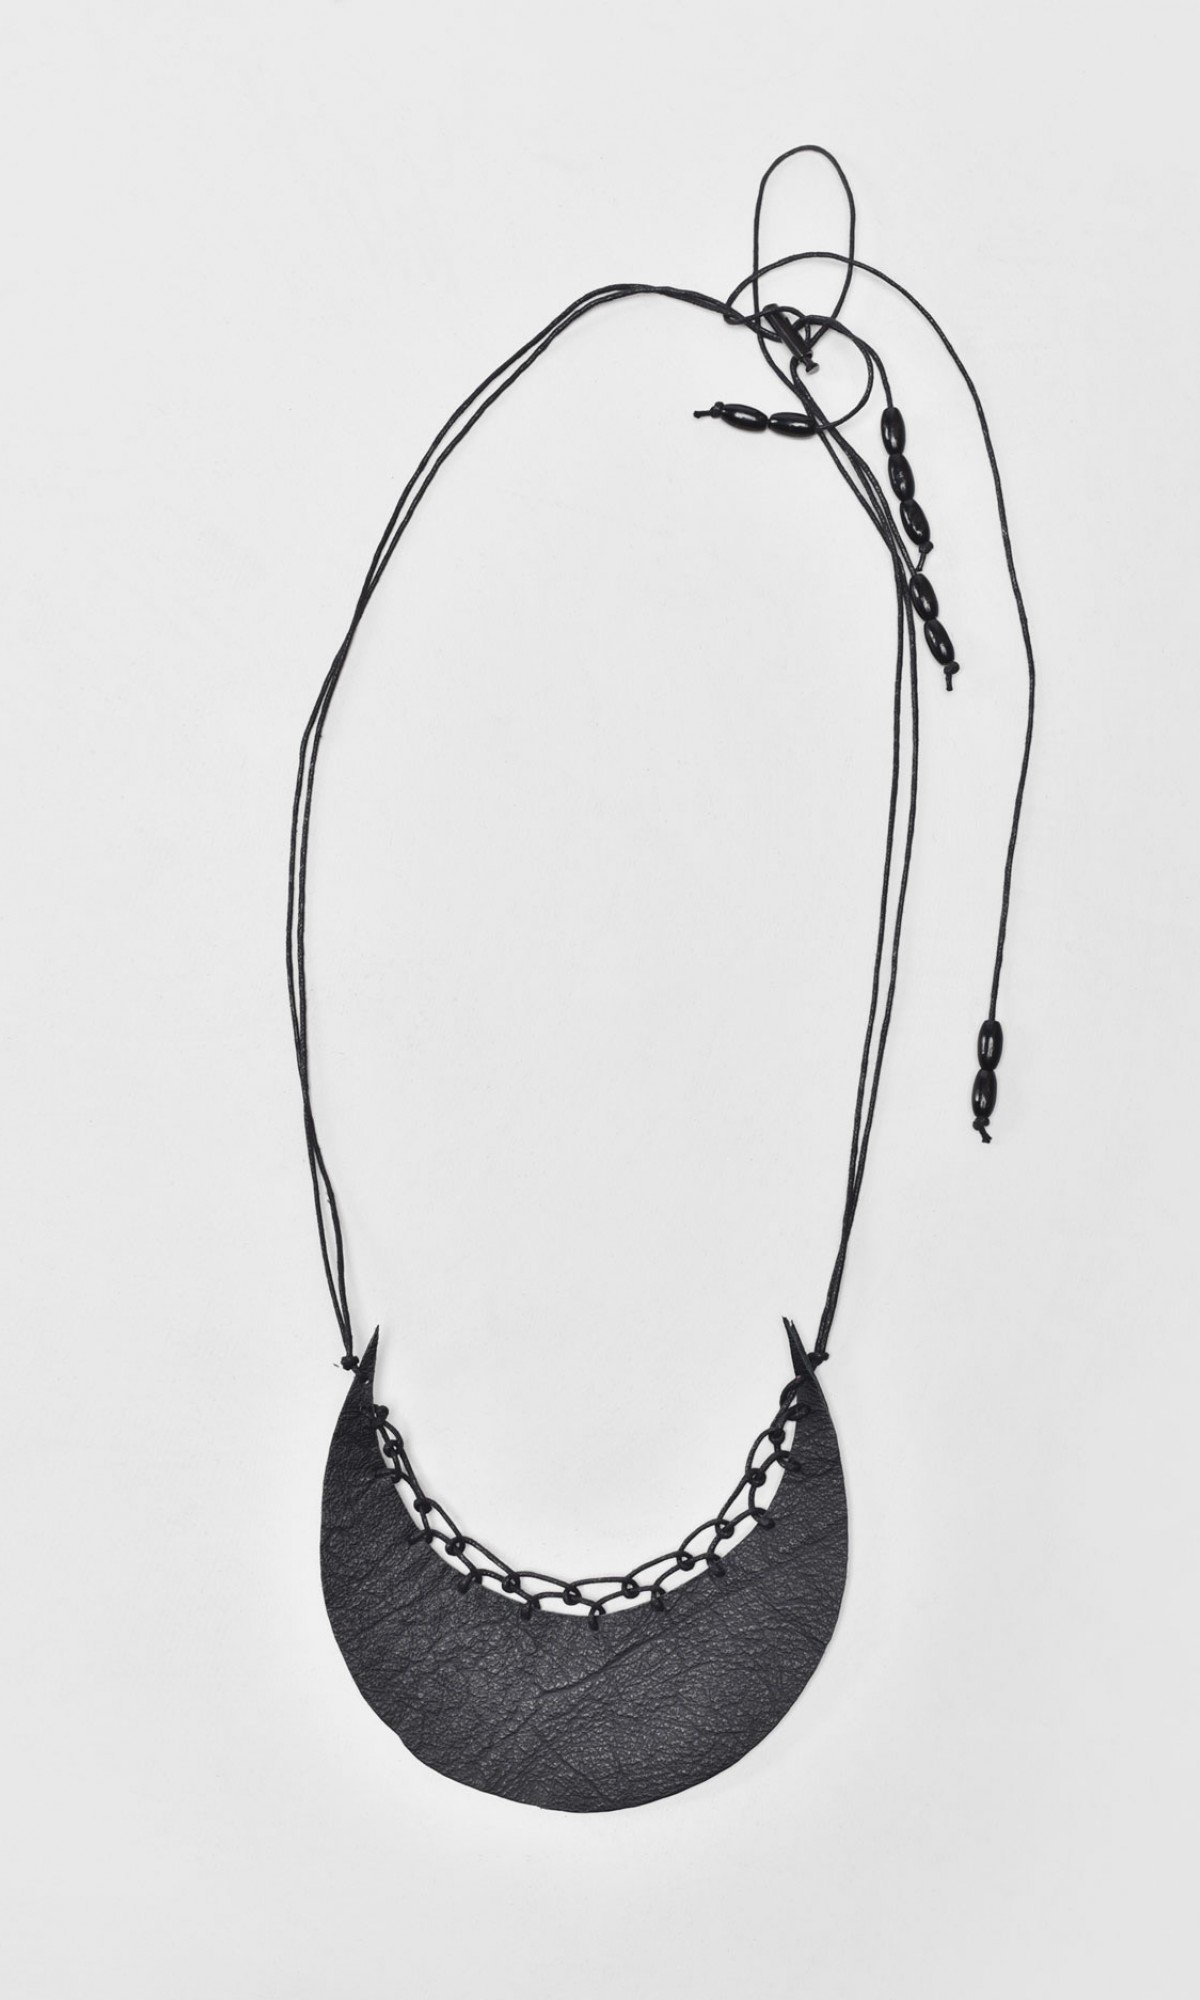 Leather Figurative Sewed Necklace A16683